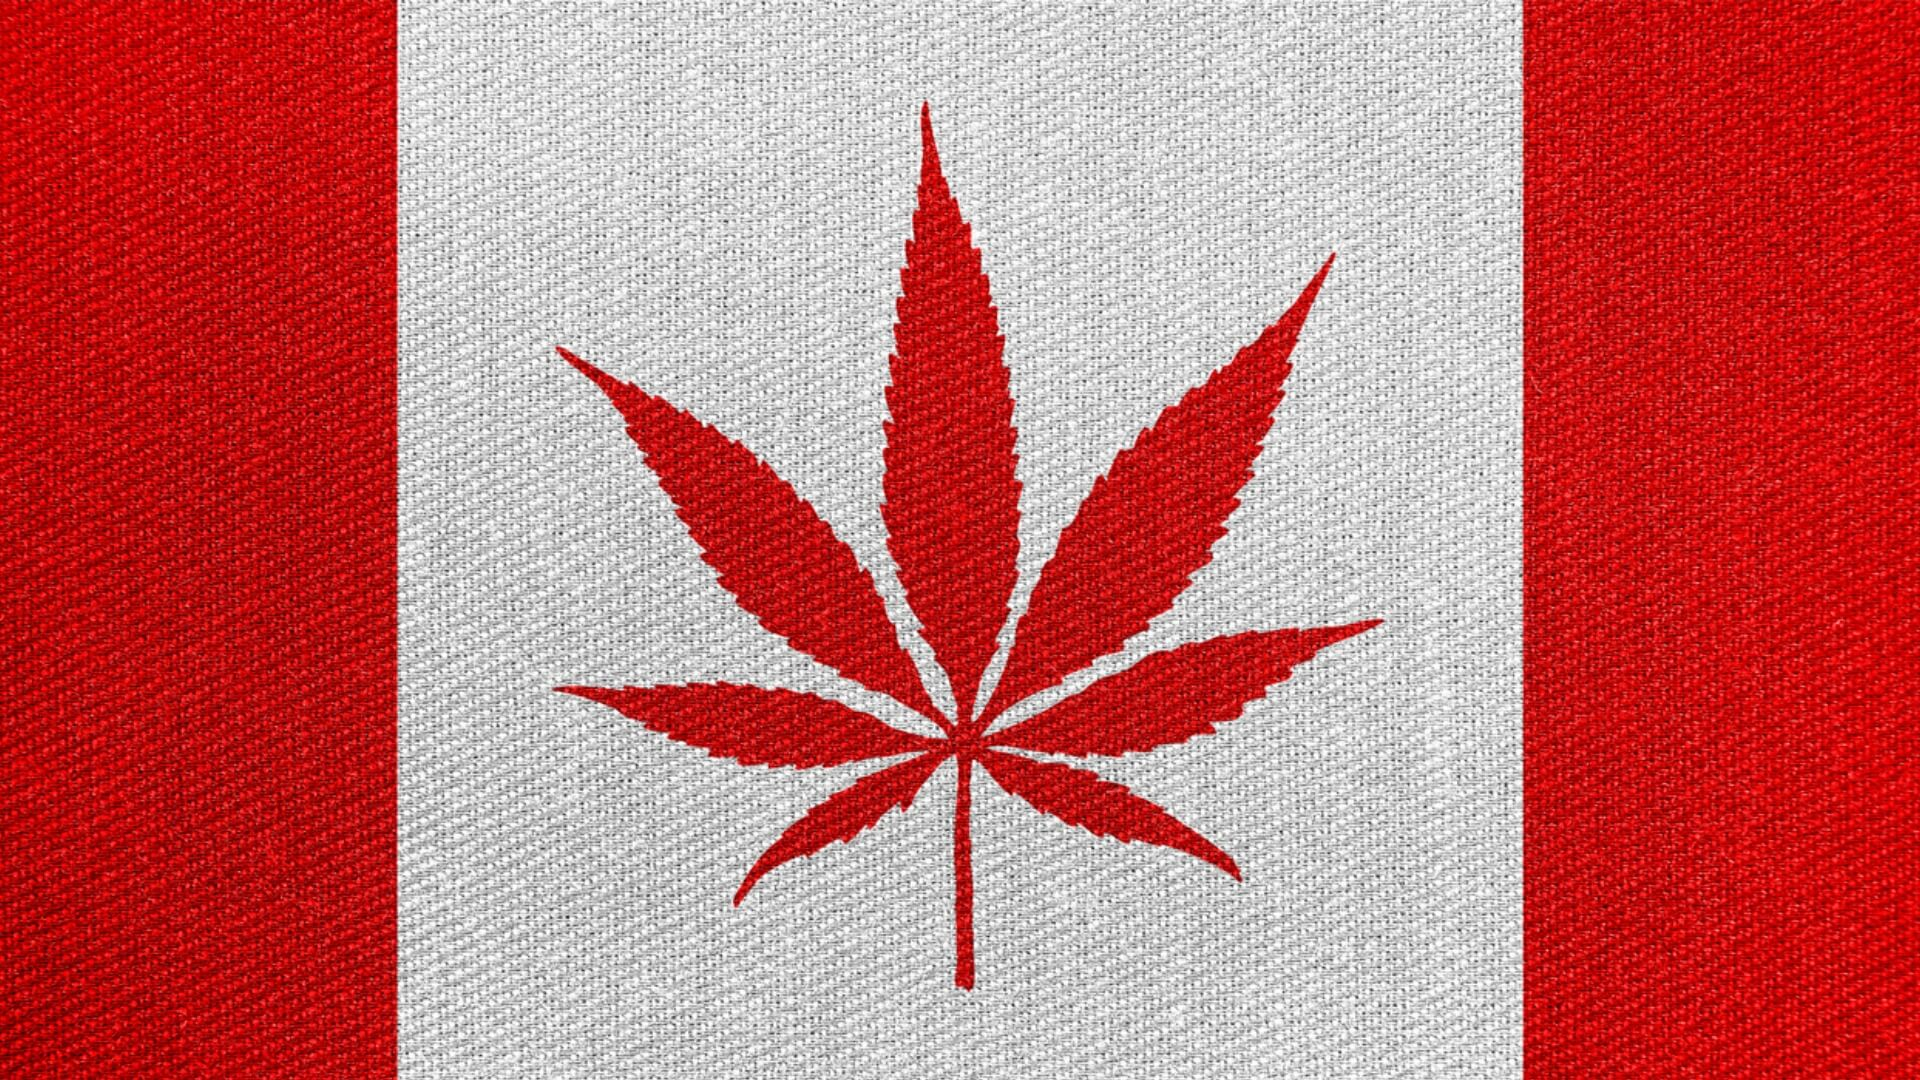 Canadian flag with a marijuana leaf in the center.